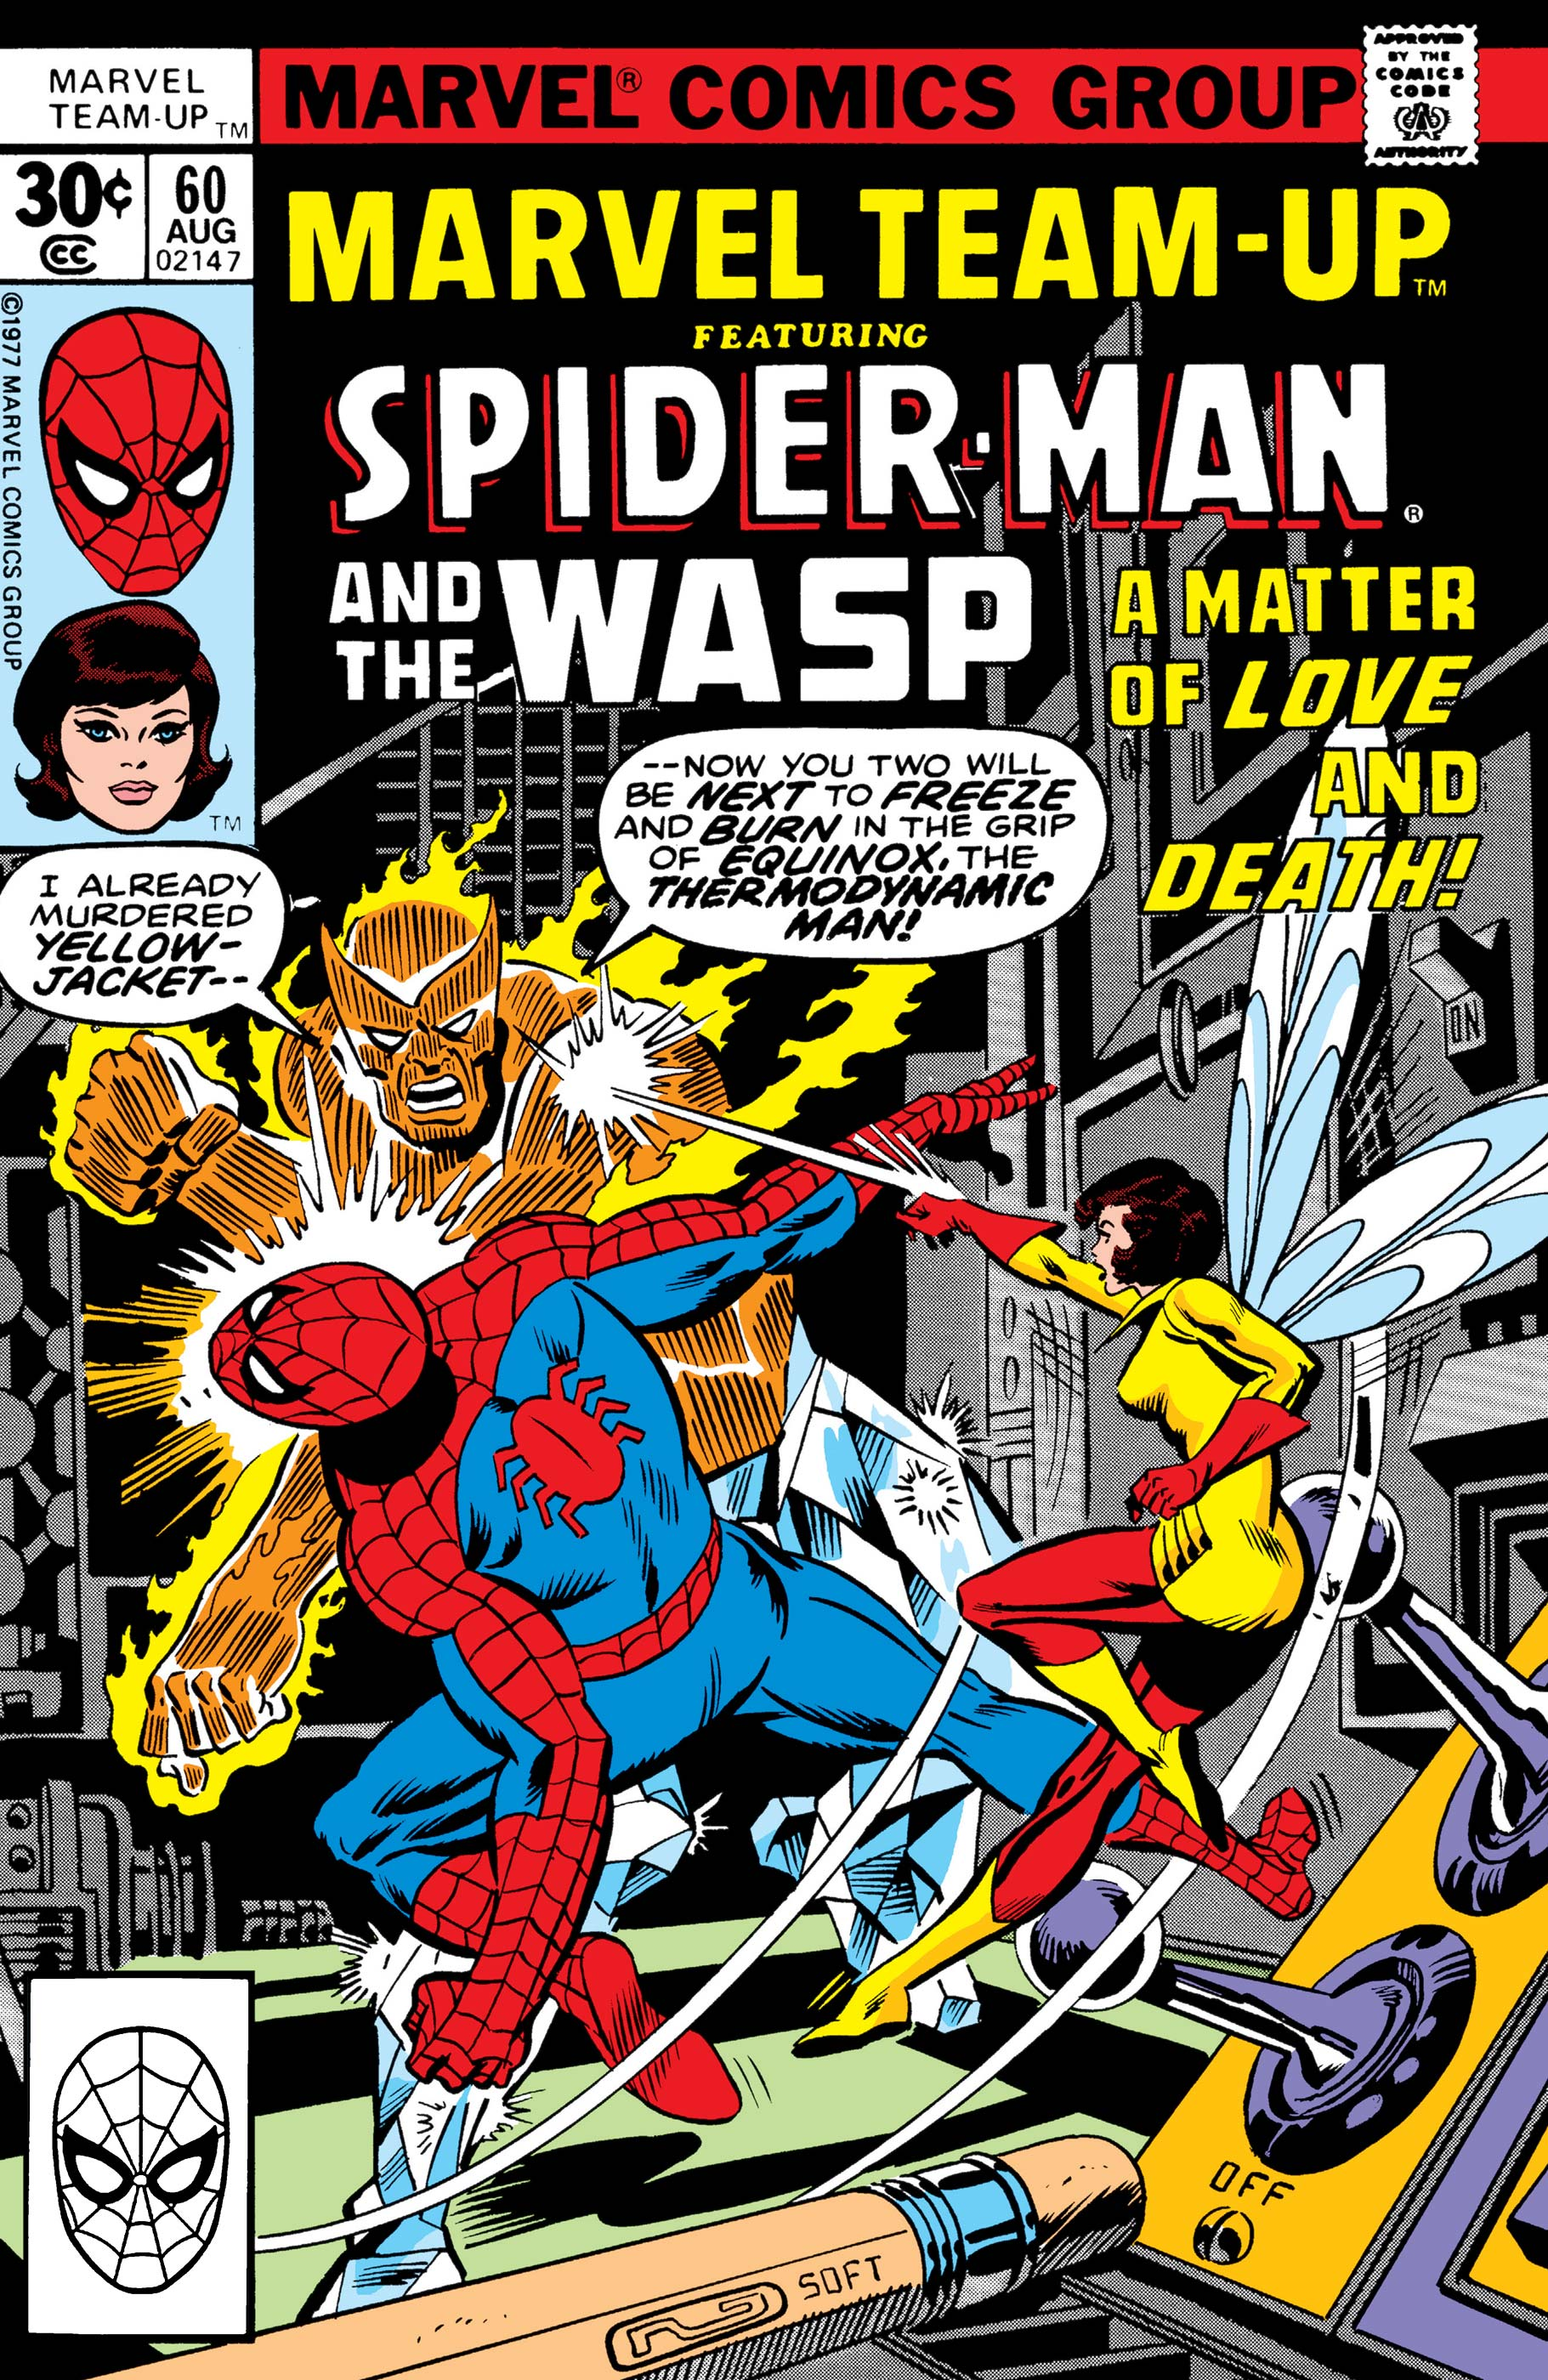 Marvel Team-Up (1972) #60